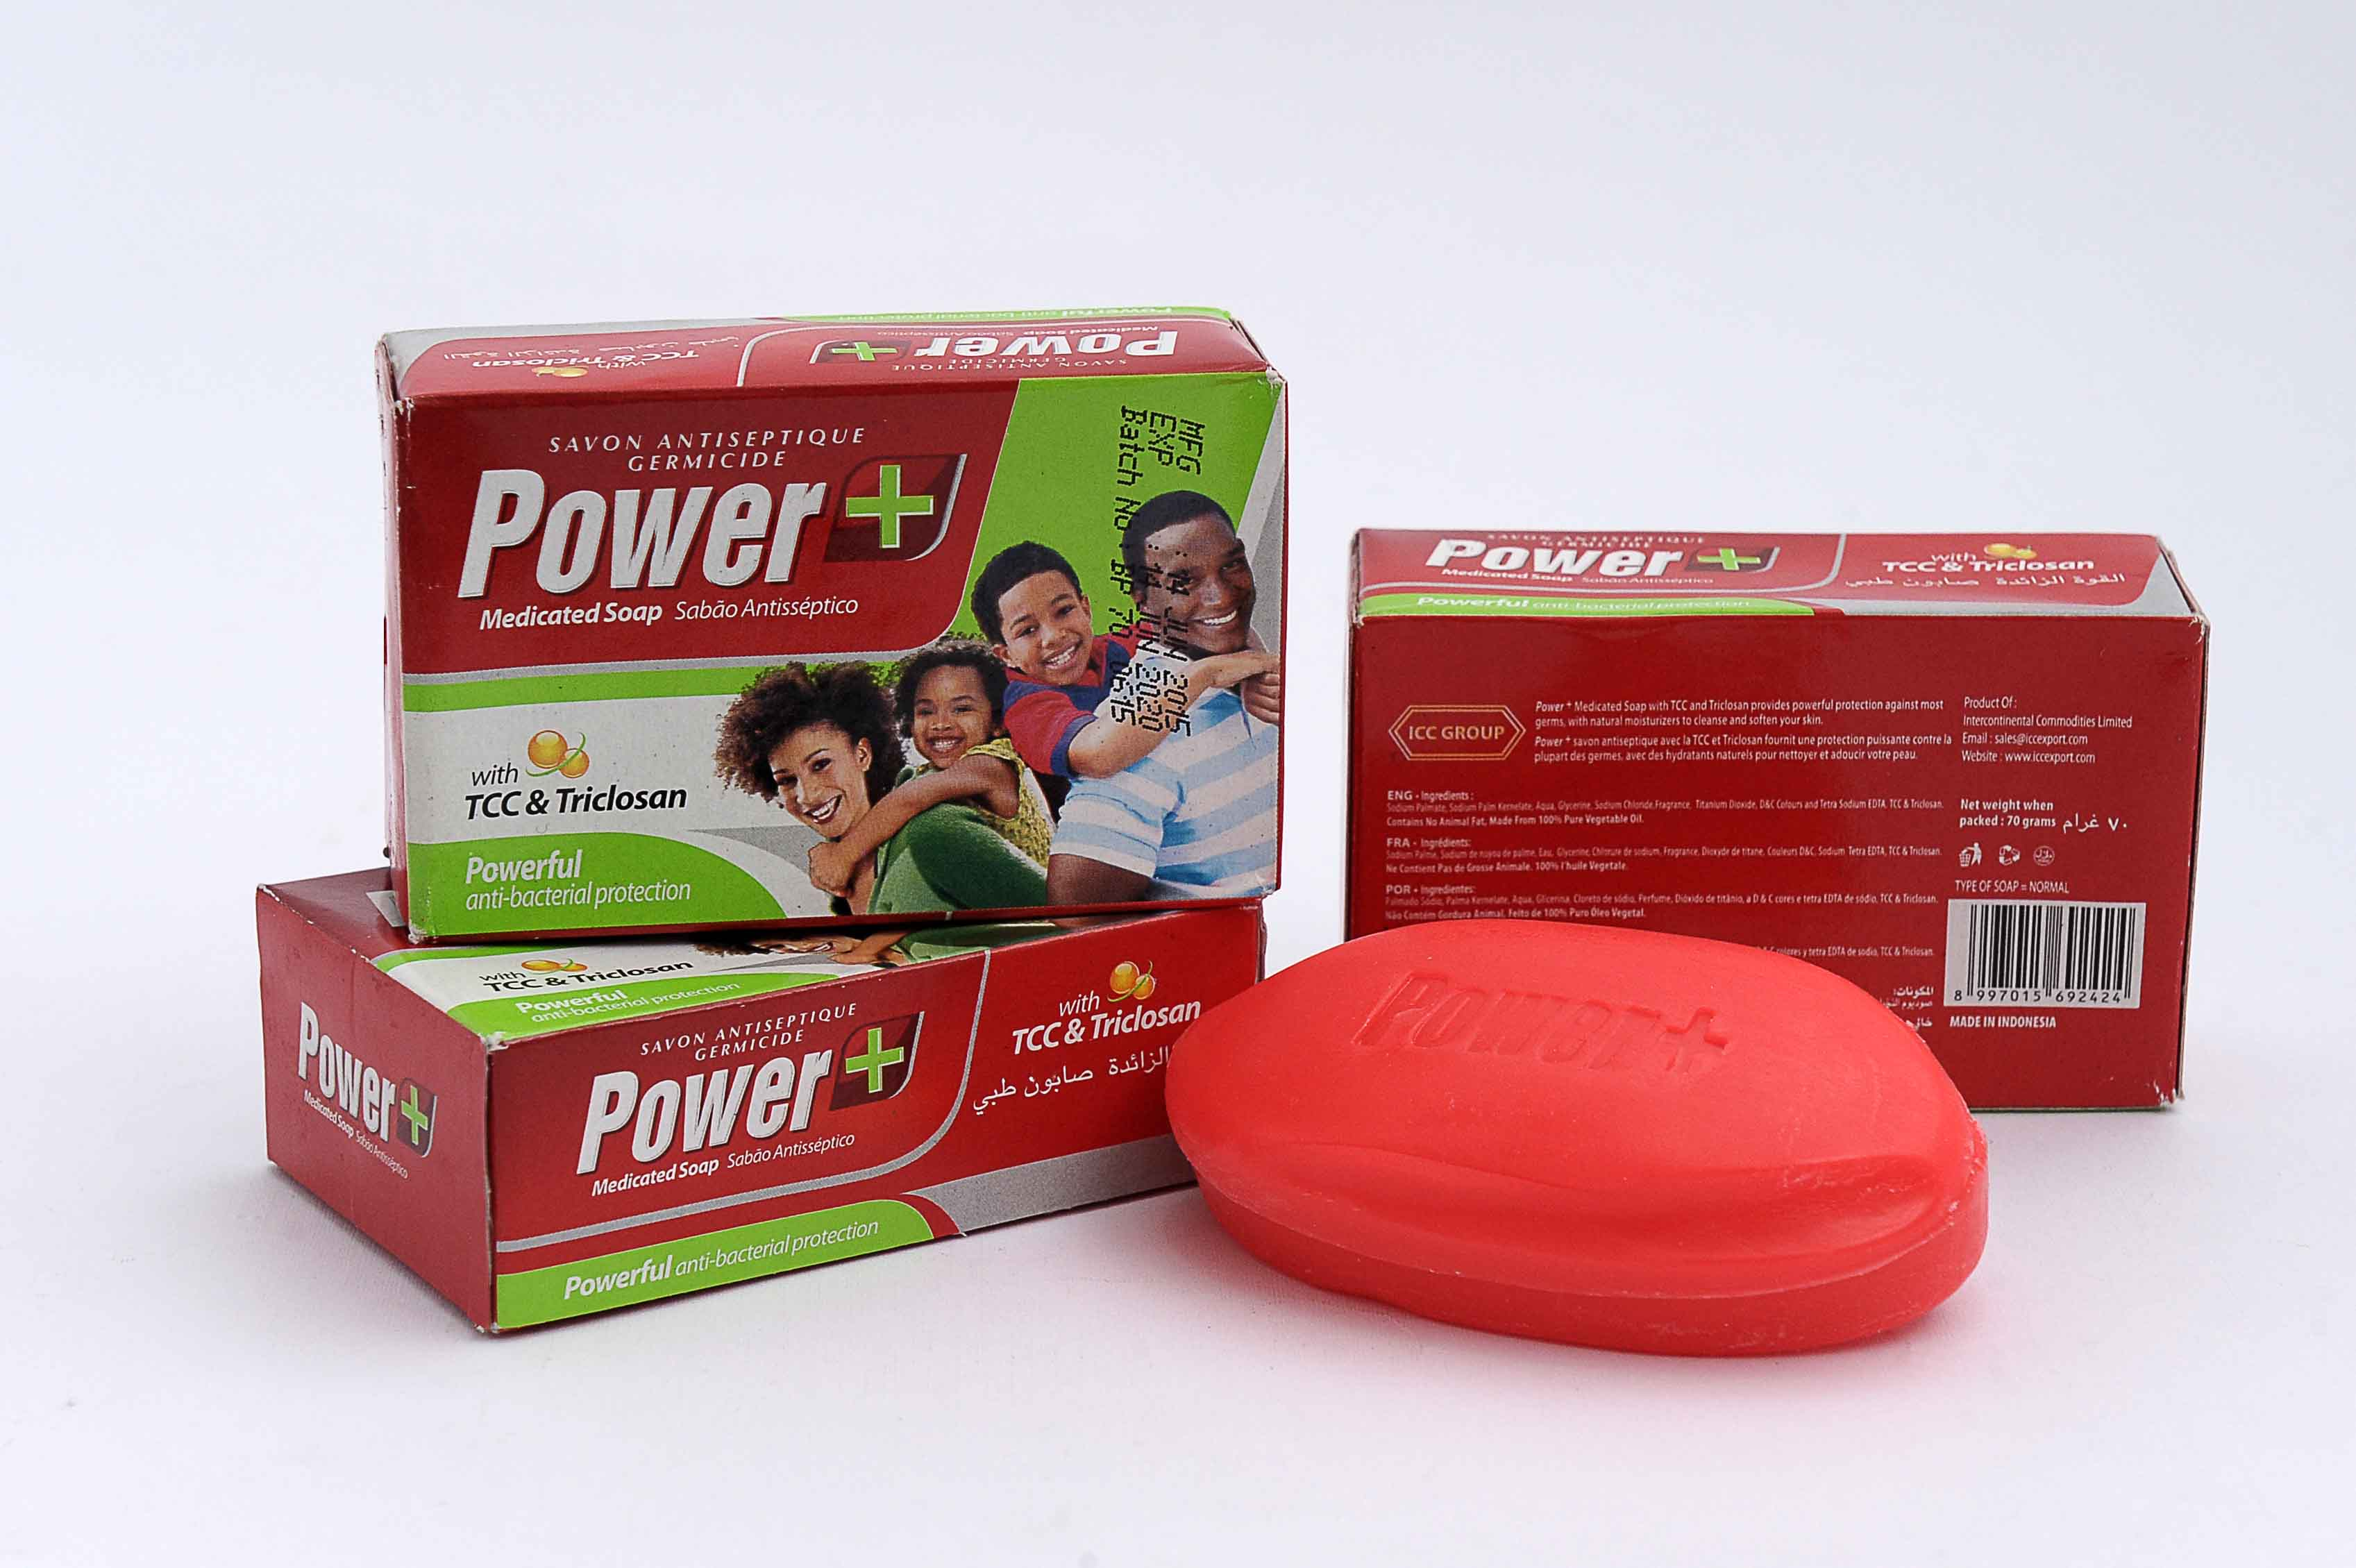 Power+ Medicated Soap 70 gram (Box Packing)